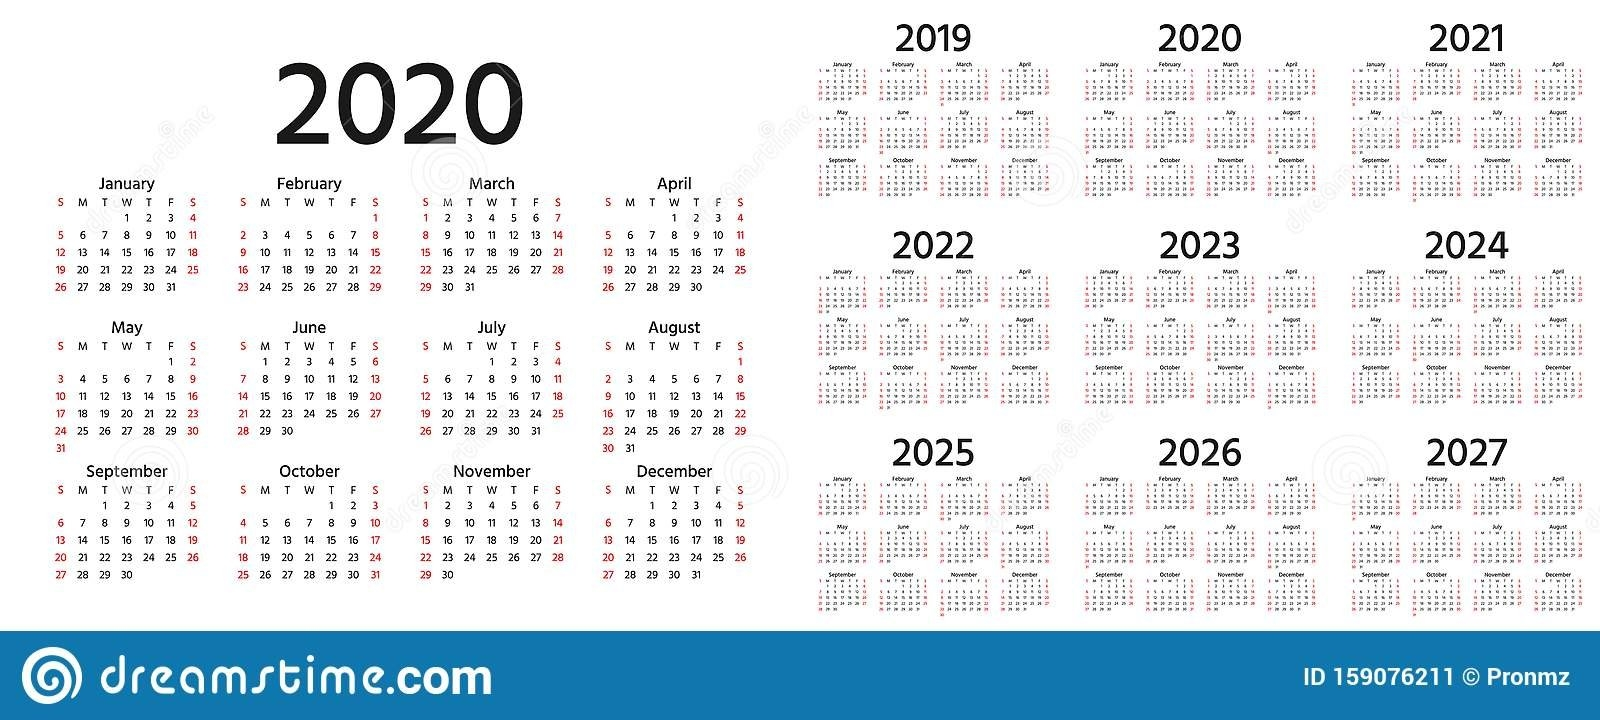 2020 Calendar. Vector Illustration. Template Year Planner Stock Vector - Illustration Of within Calender 2021 To 2025 Photo